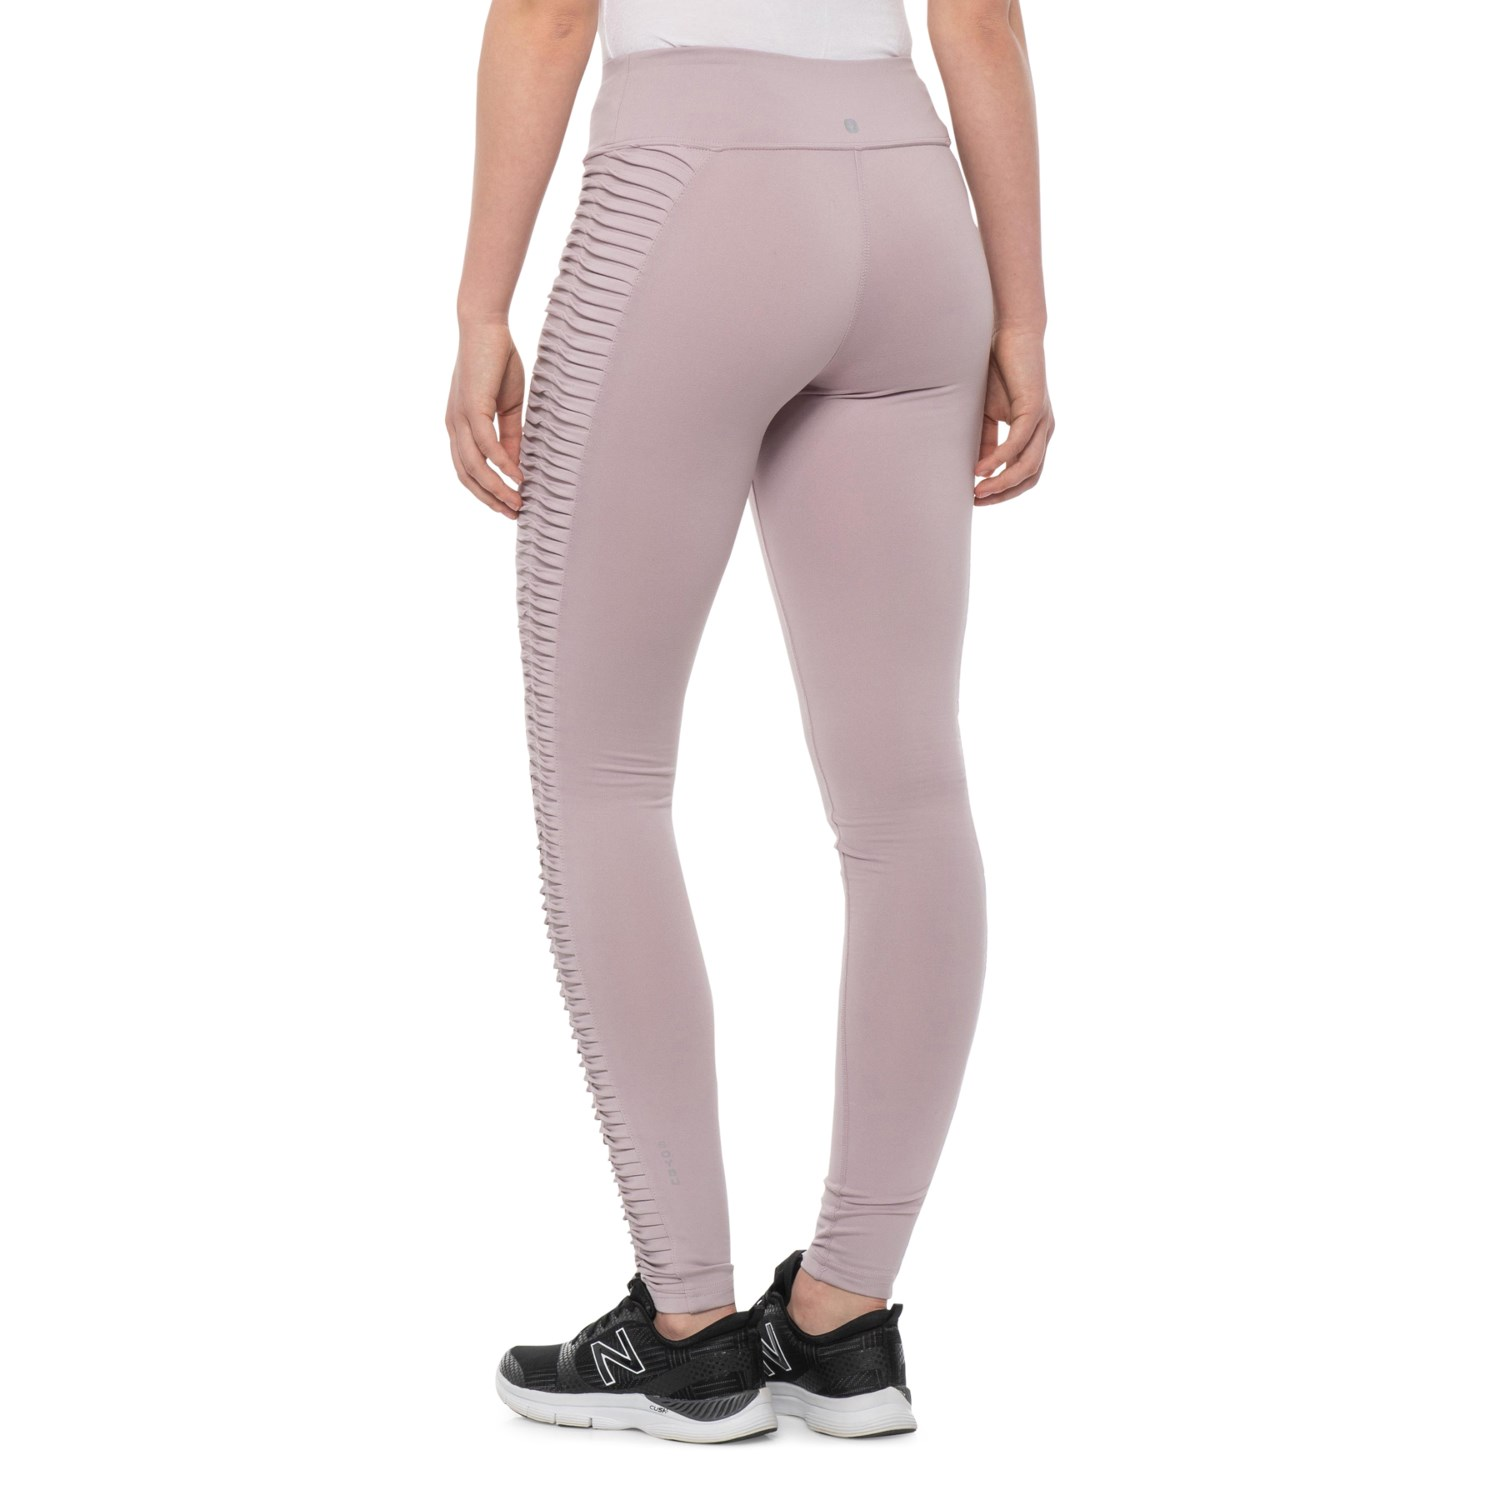 57c94351cbca35 Soybu Paschi Yoga Leggings (For Women)